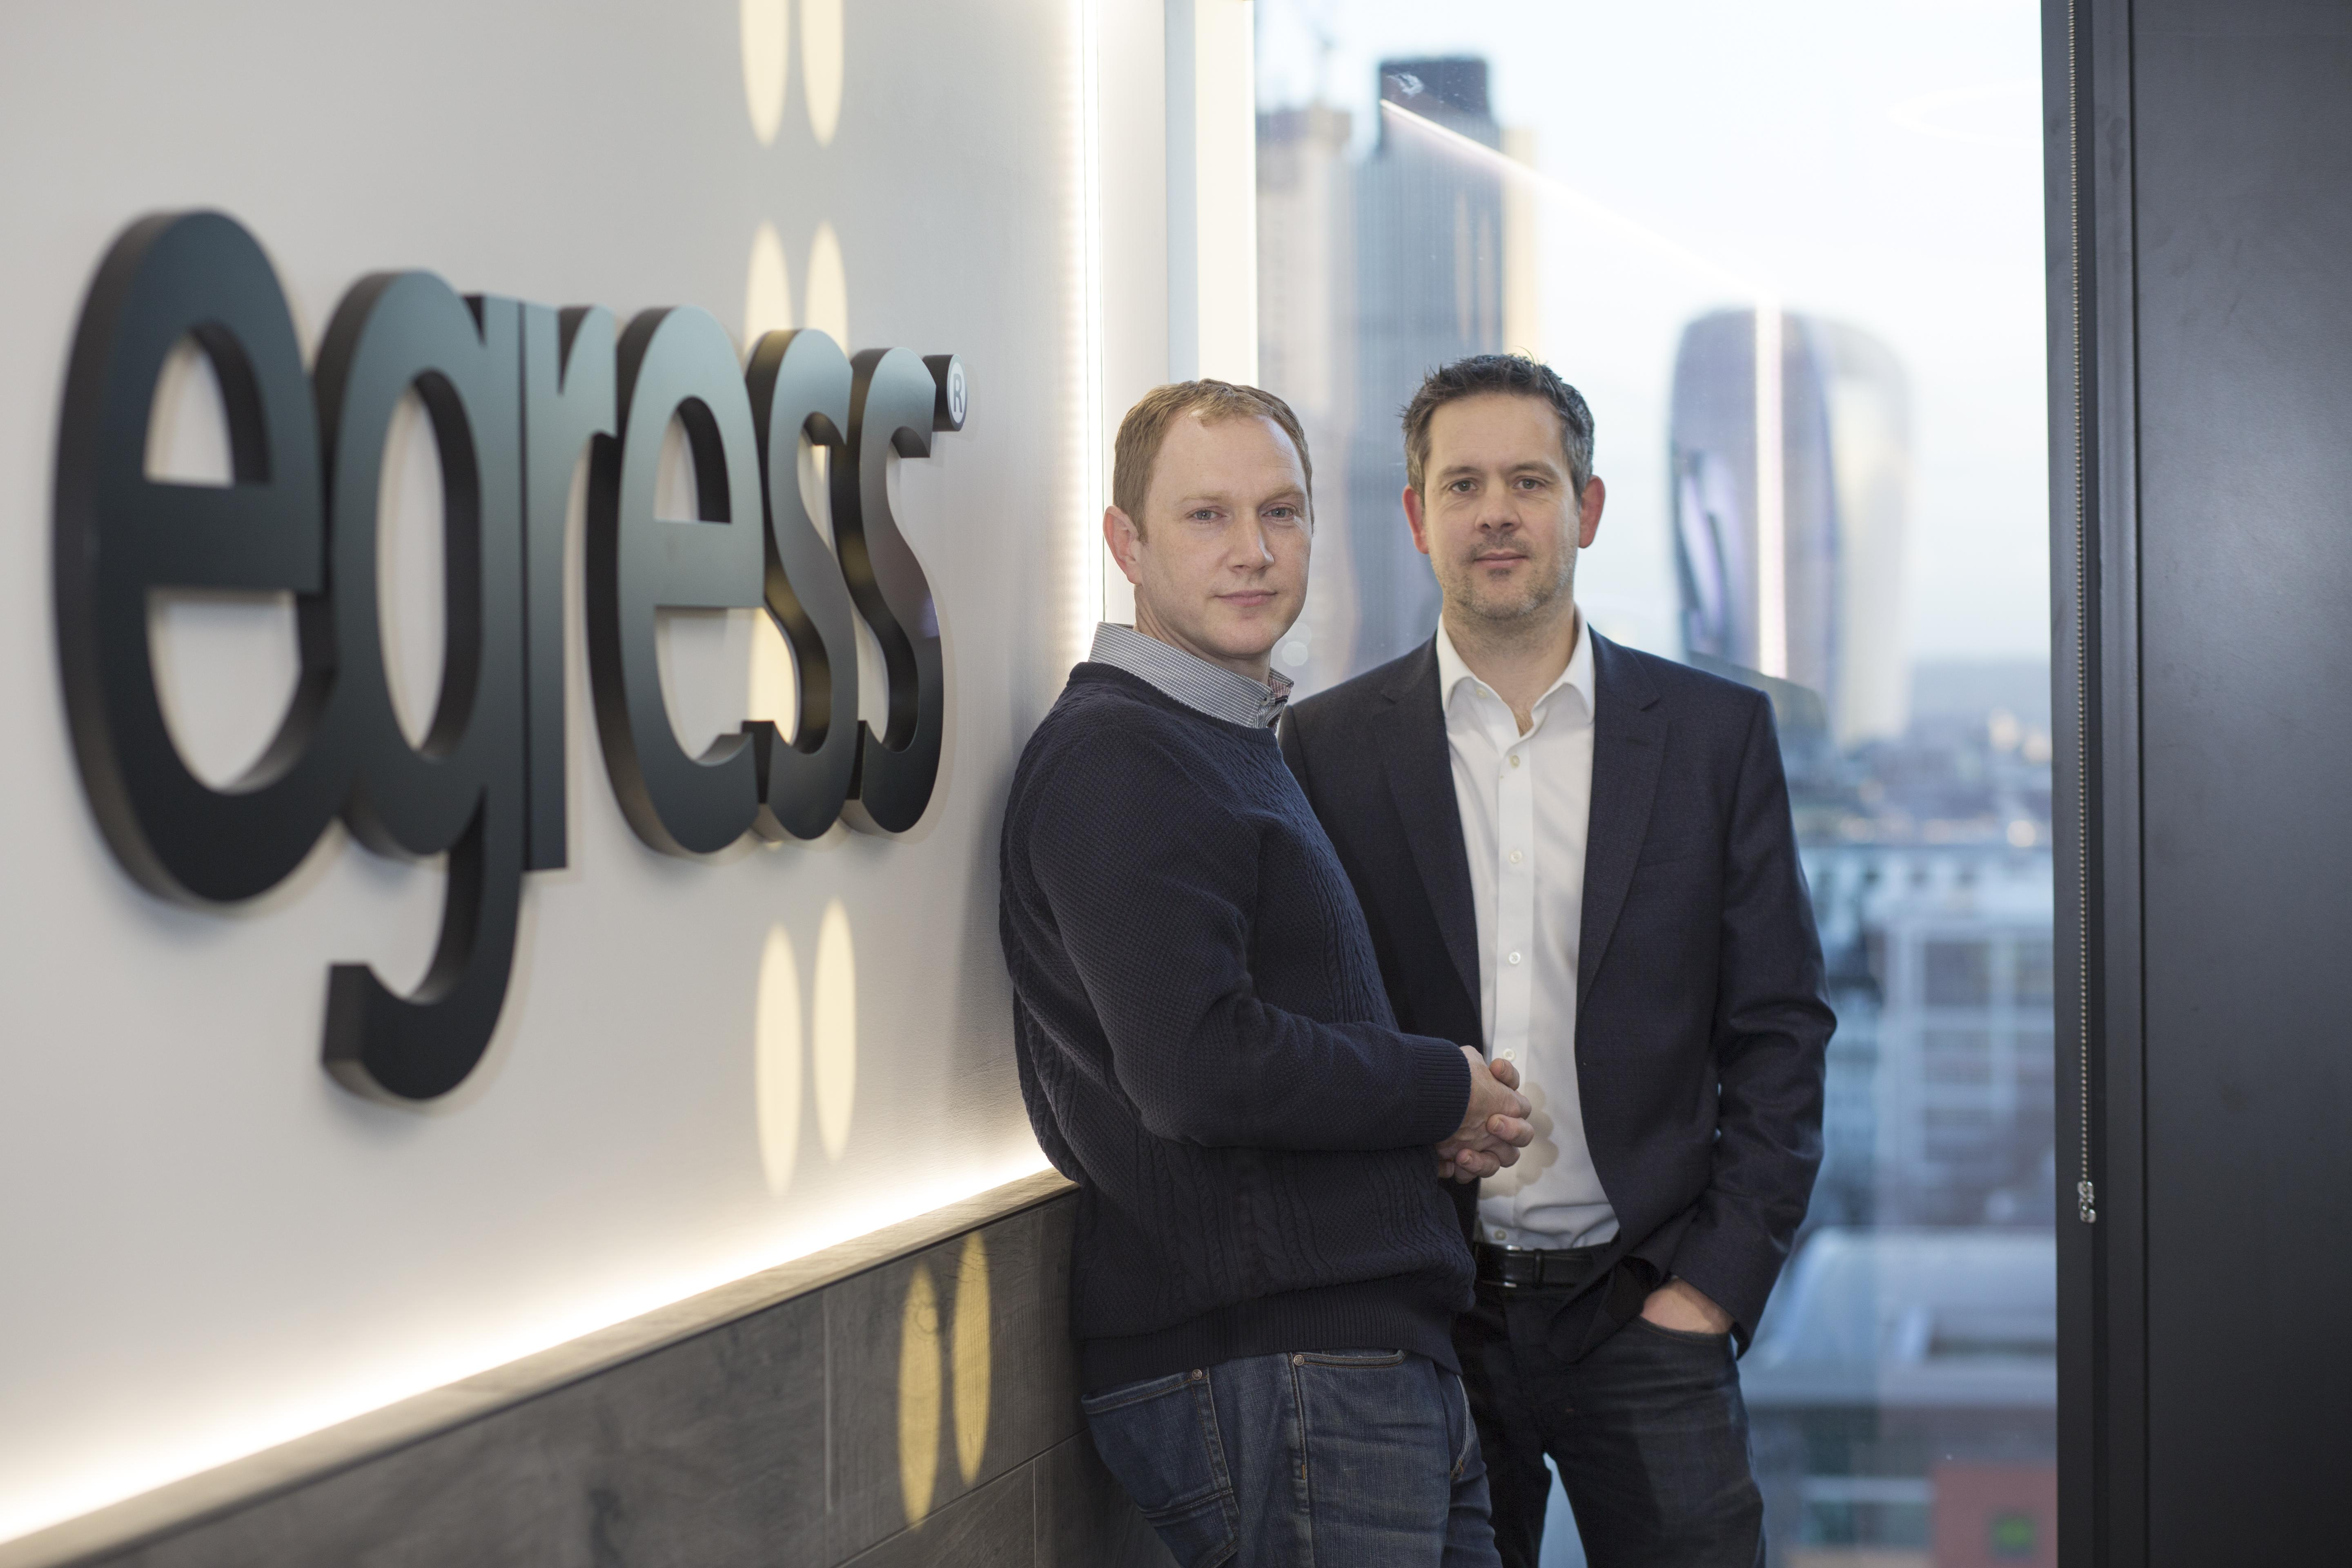 Egress secures $40m growth equity funding led by FTV Capital